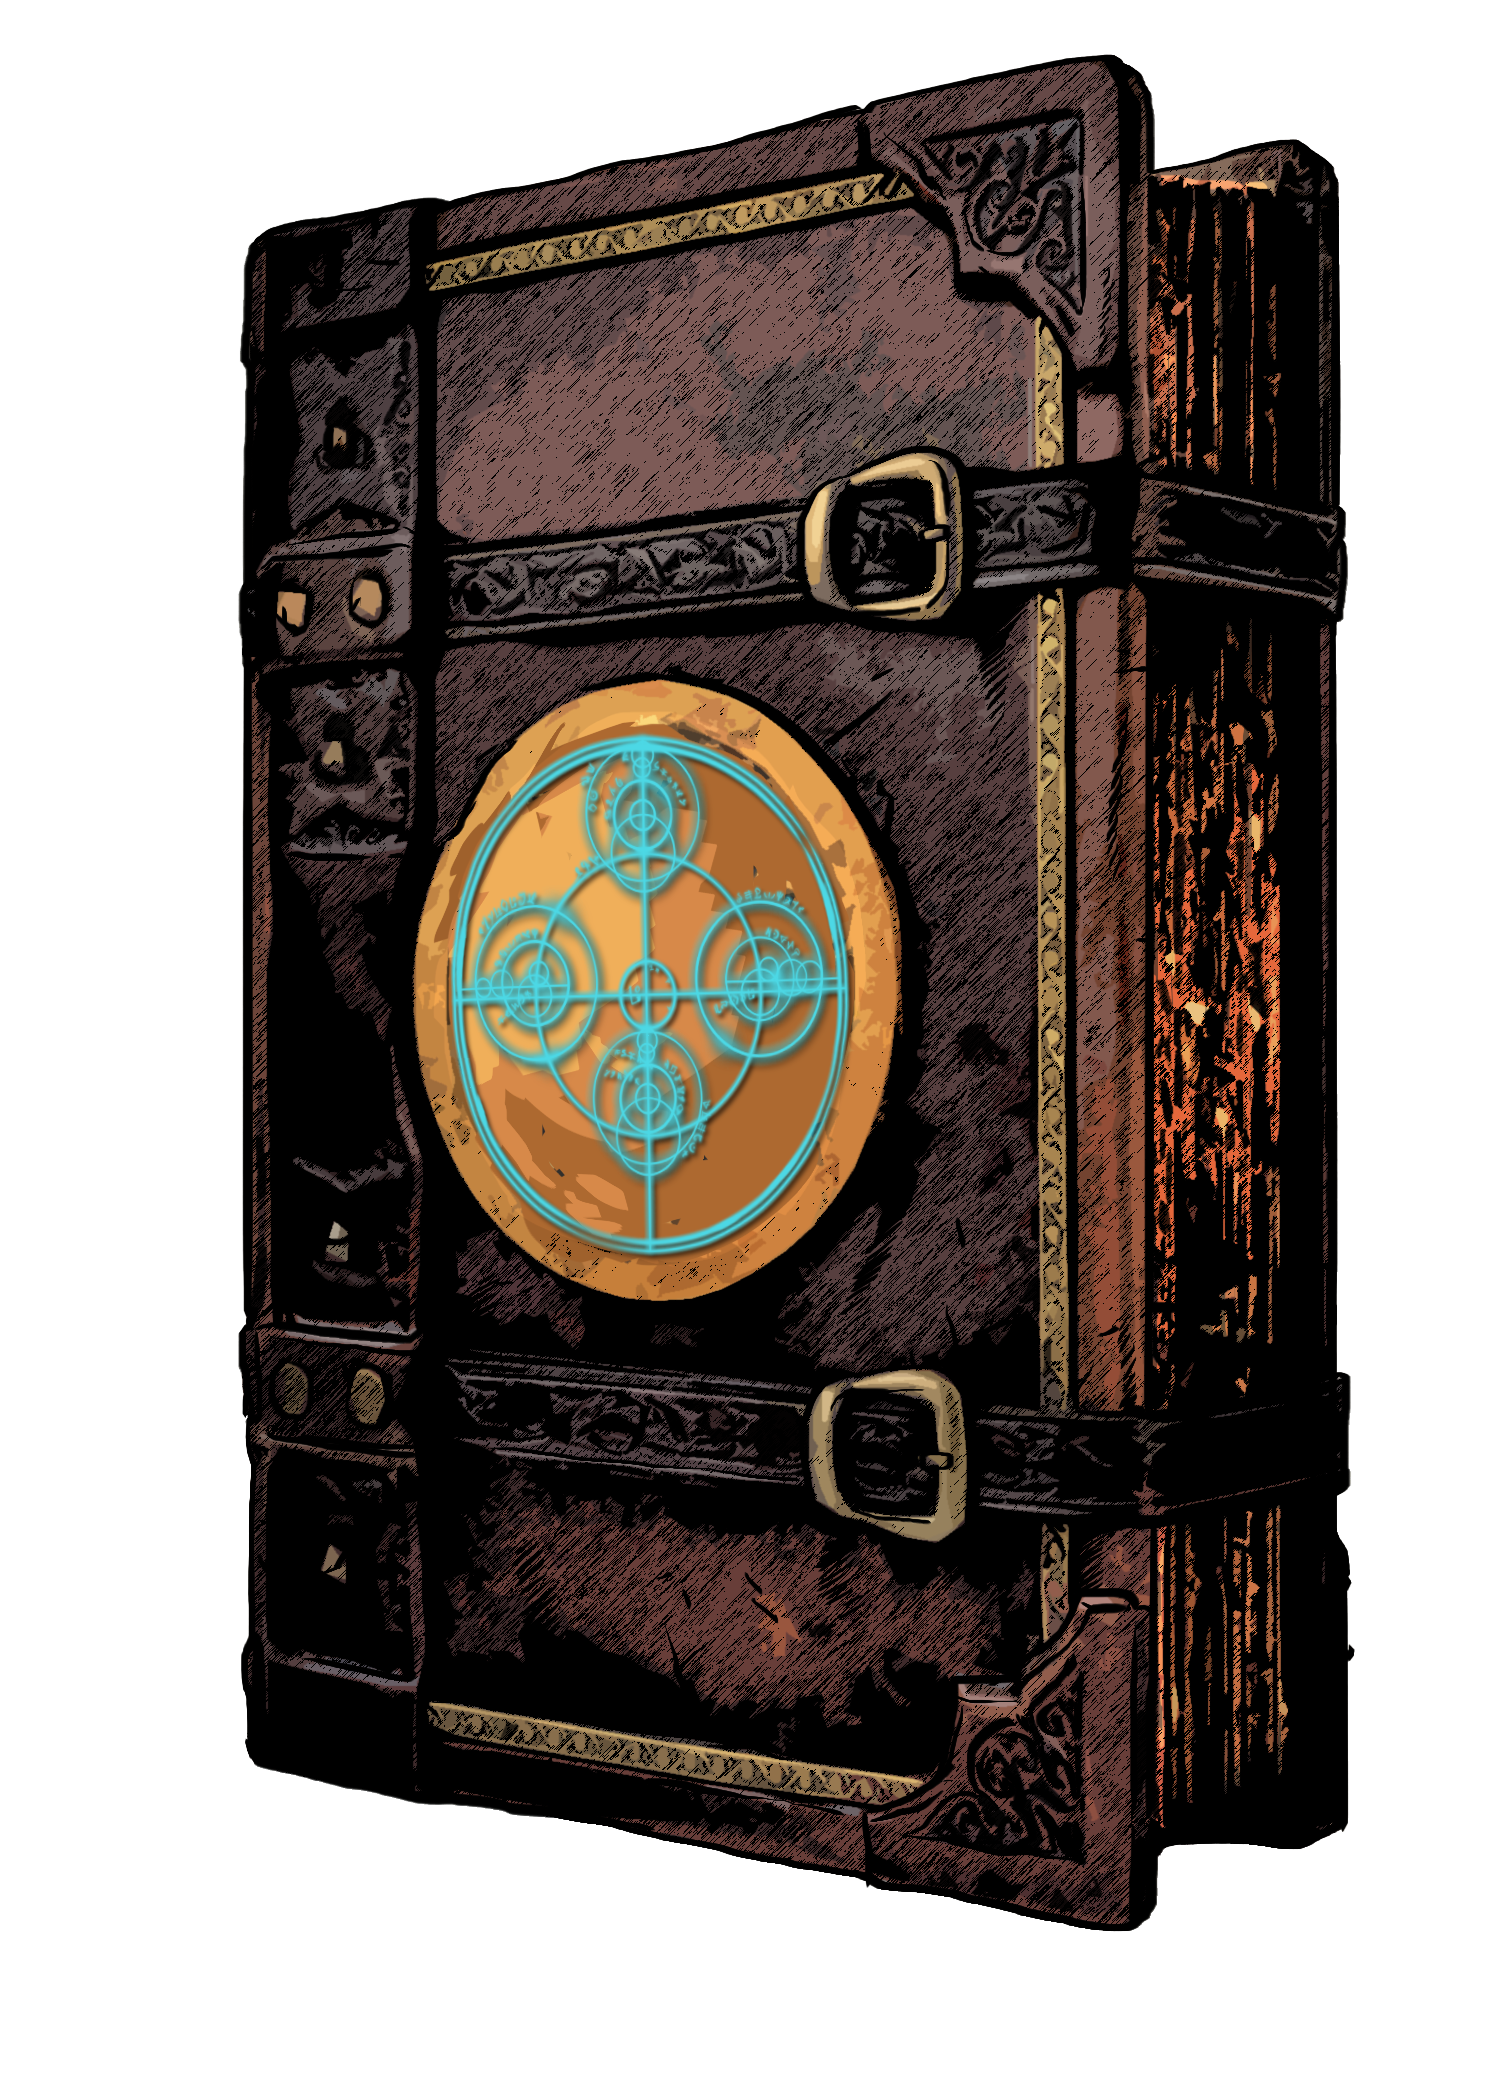 A spellbook with a glowing glyph on the cover